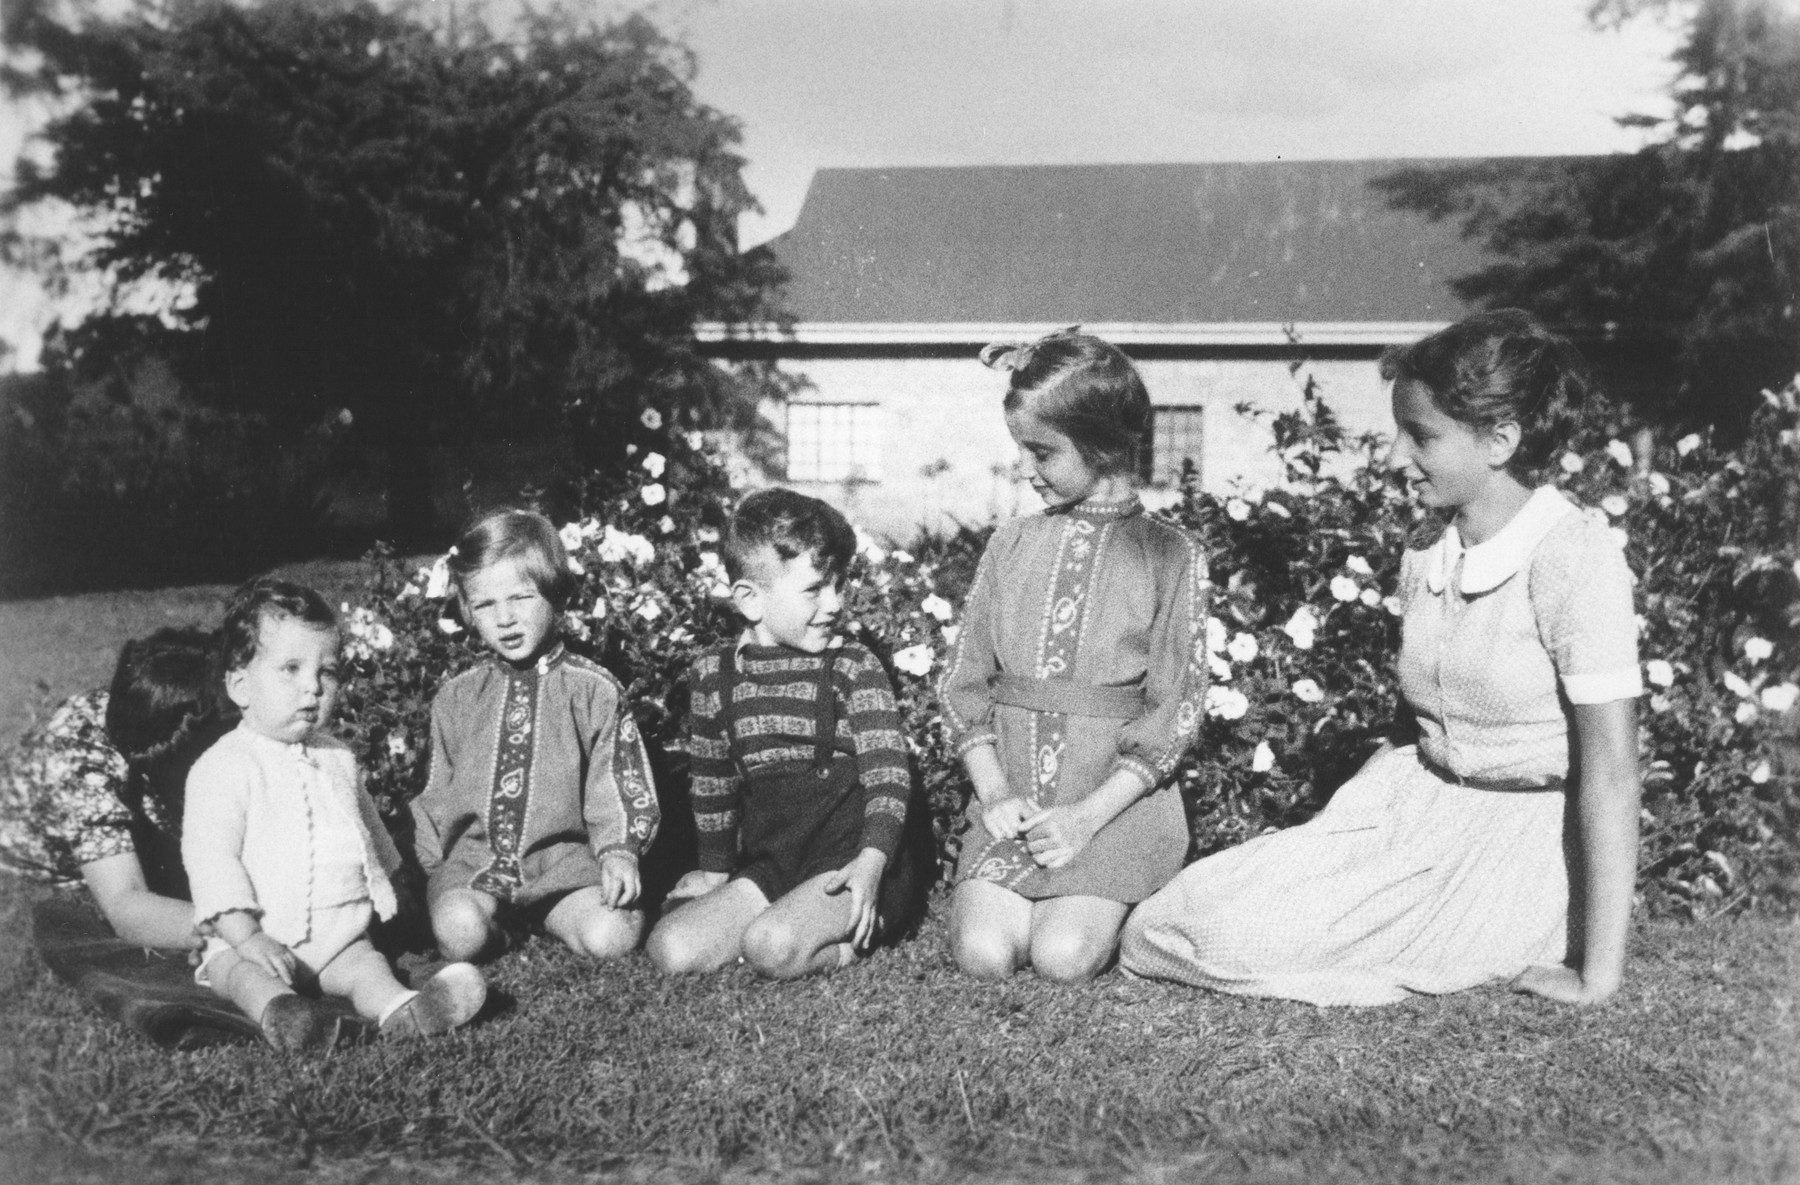 Five Jewish refugee children pose outside on the lawn of their farm near Limuru, Kenya (Kiambu district), where they found refuge during World War II.  Pictured from left to right are Philip Berg (being supported by his Aunt Erna), Hannah Baum, Egon, Gisela and Inge Berg.